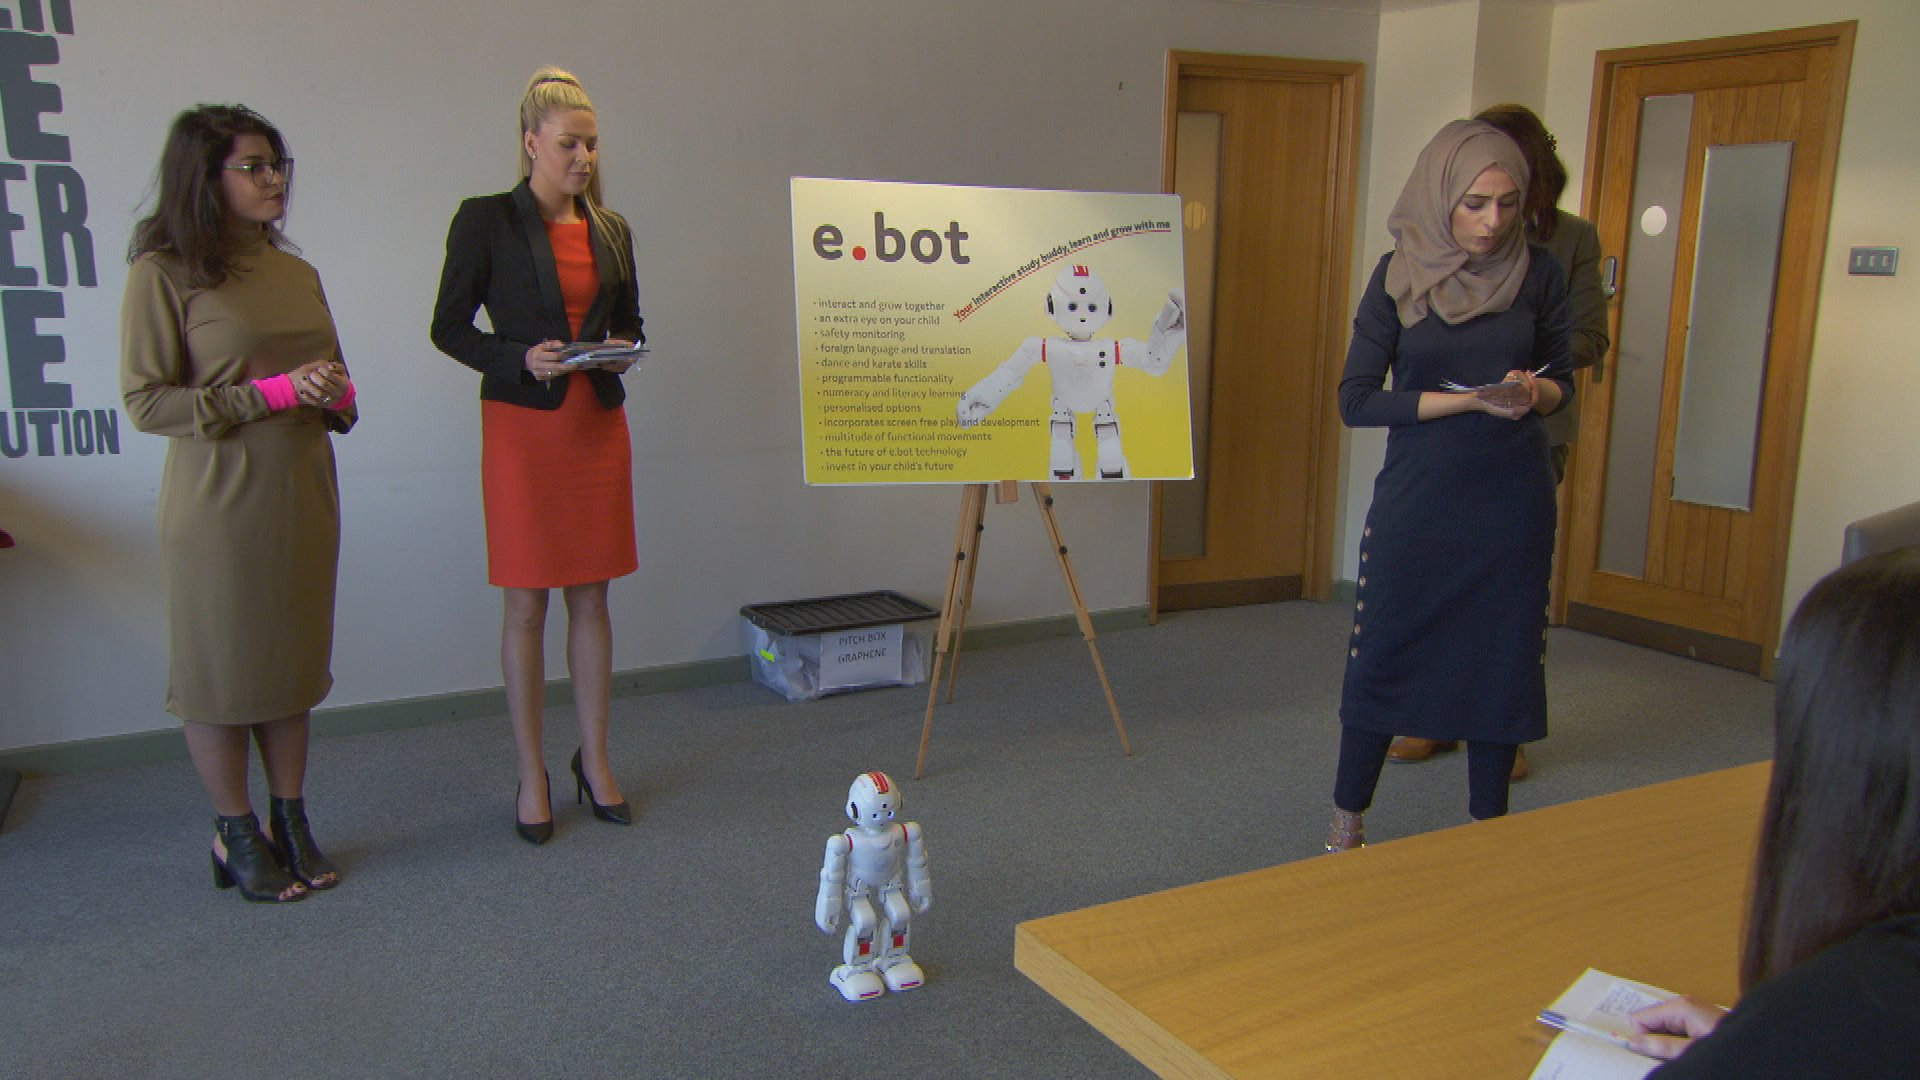 The girls are about to demonstrate the dancing skills of the robot on The Apprentice tonight at 9pm BBC1. https://t.co/BGyunv9QQT